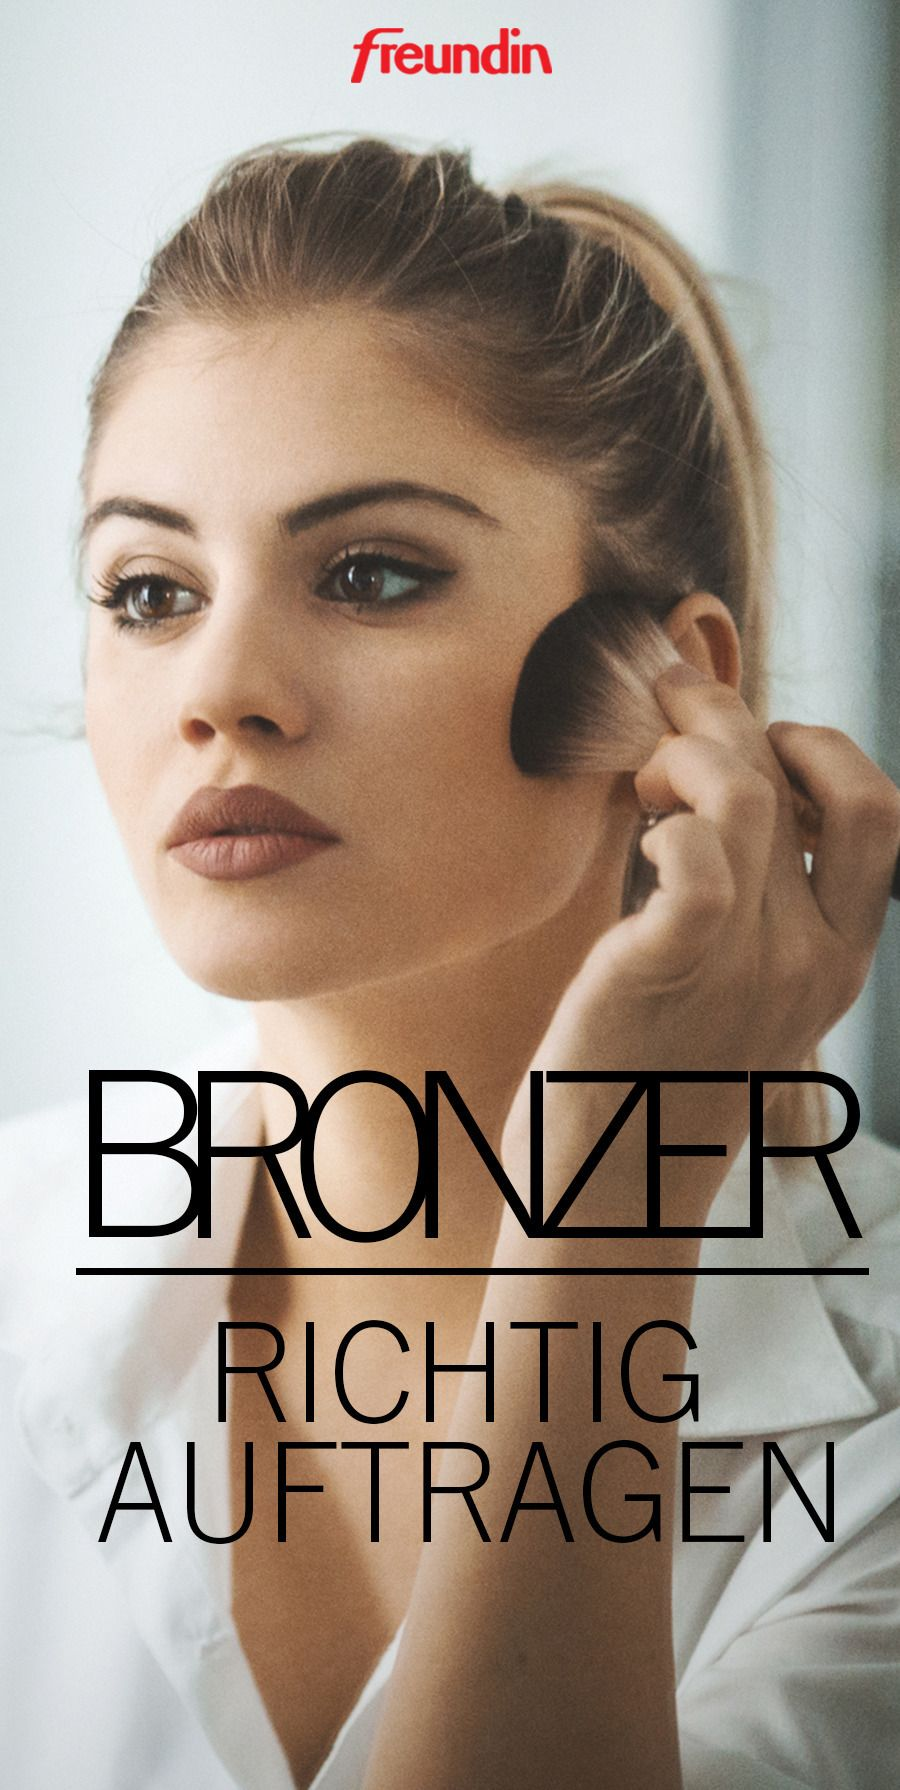 Photo of Applying bronzer made easy: picture instructions + tips